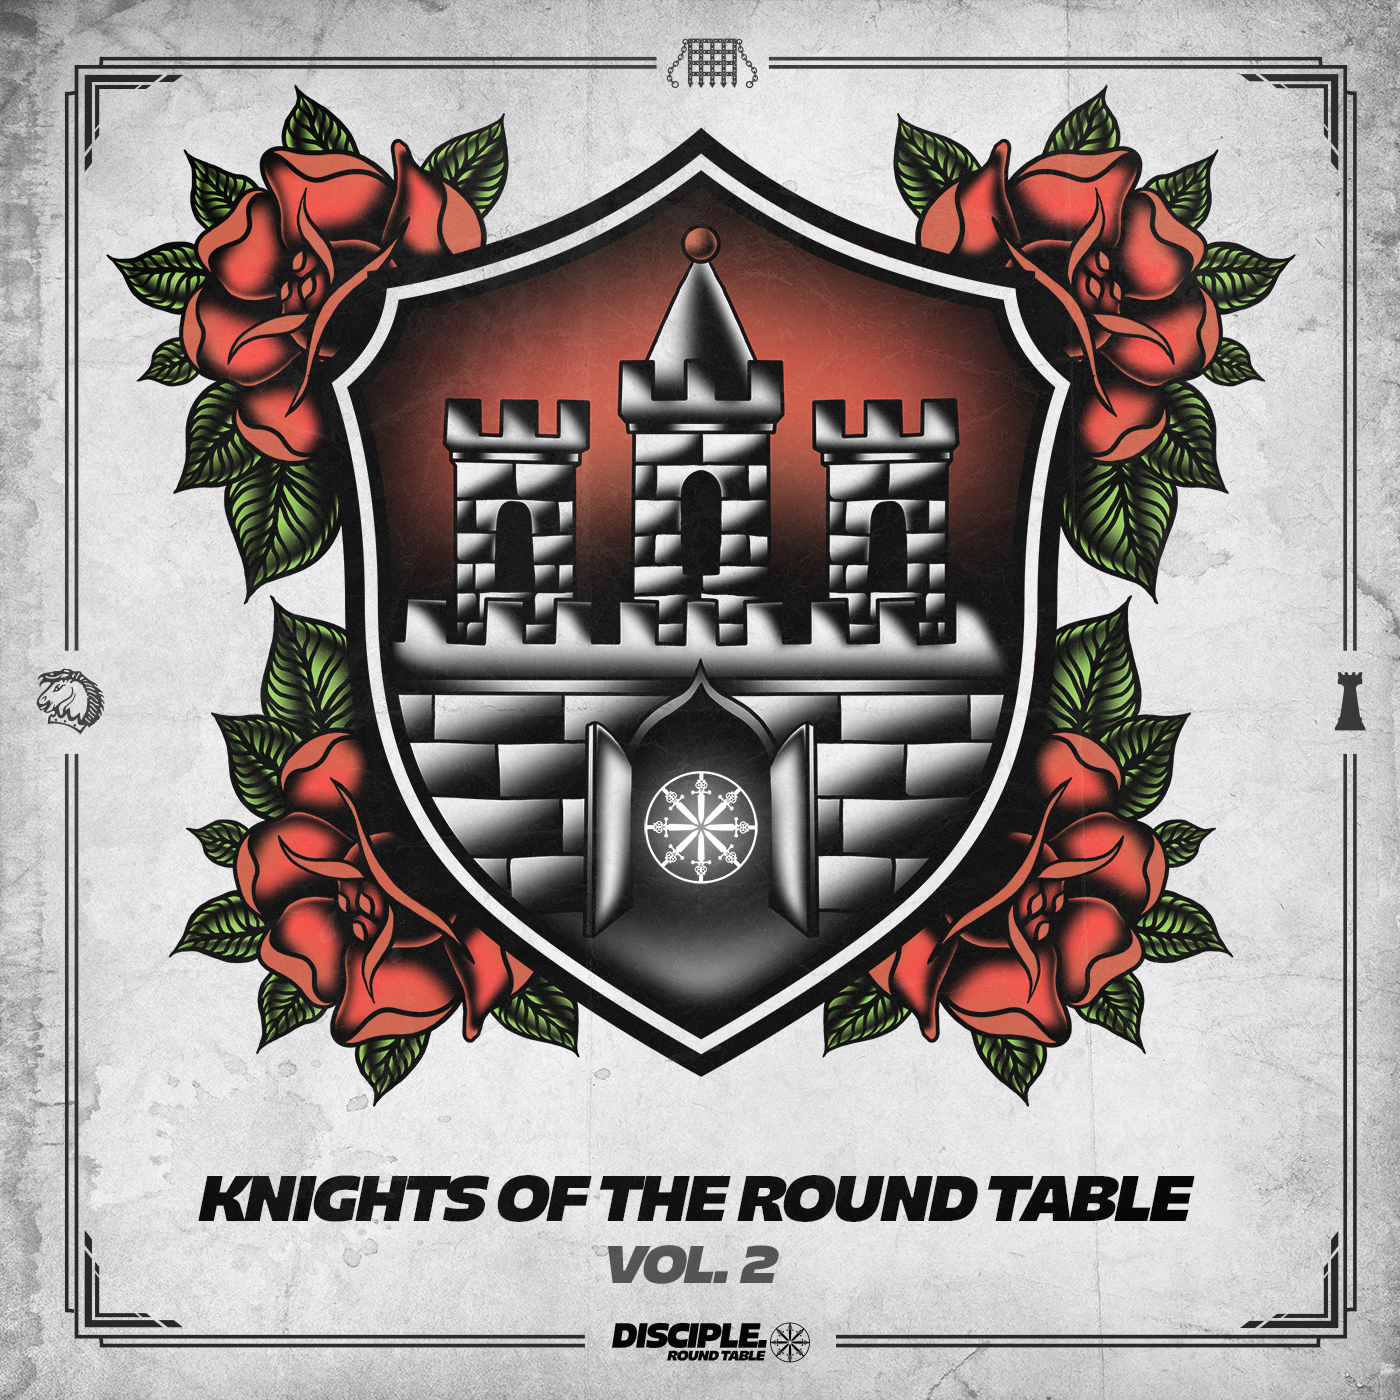 12 Knights Of The Round Table.Disciple Knights Of The Round Table Vol 2 Is Absolute Mayhem